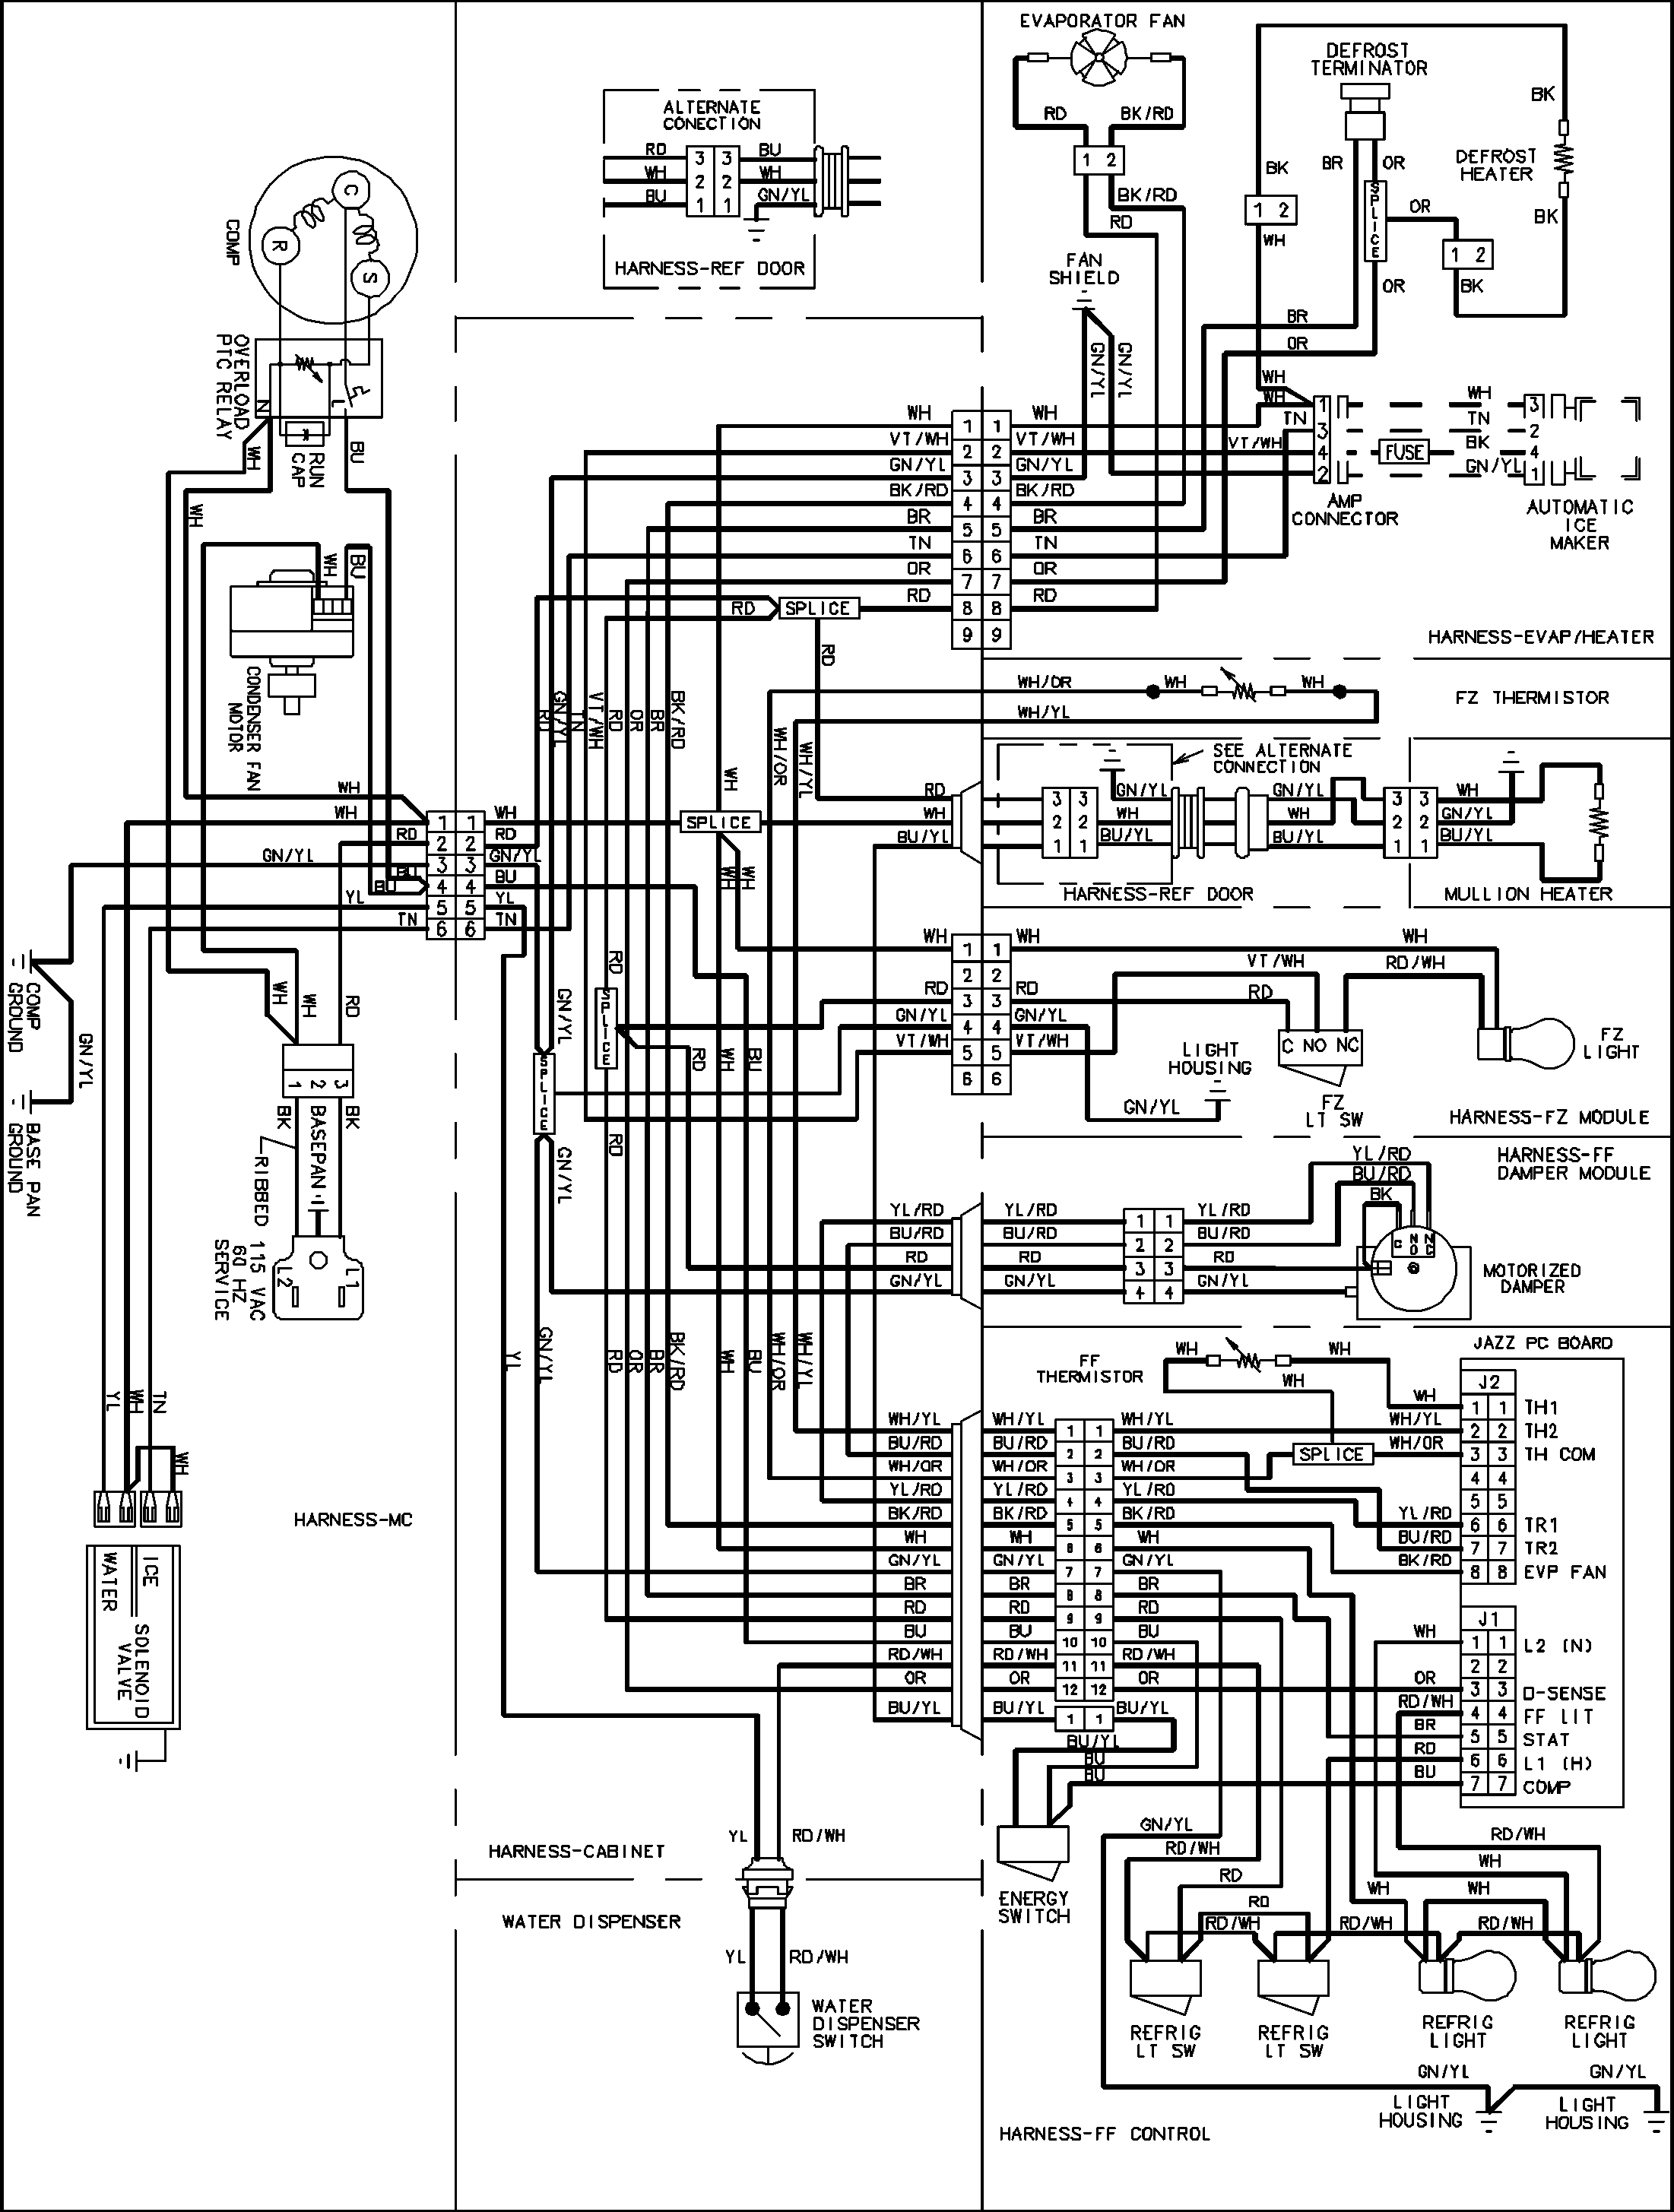 Maytag Refrigerator Wiring Diagram Sample